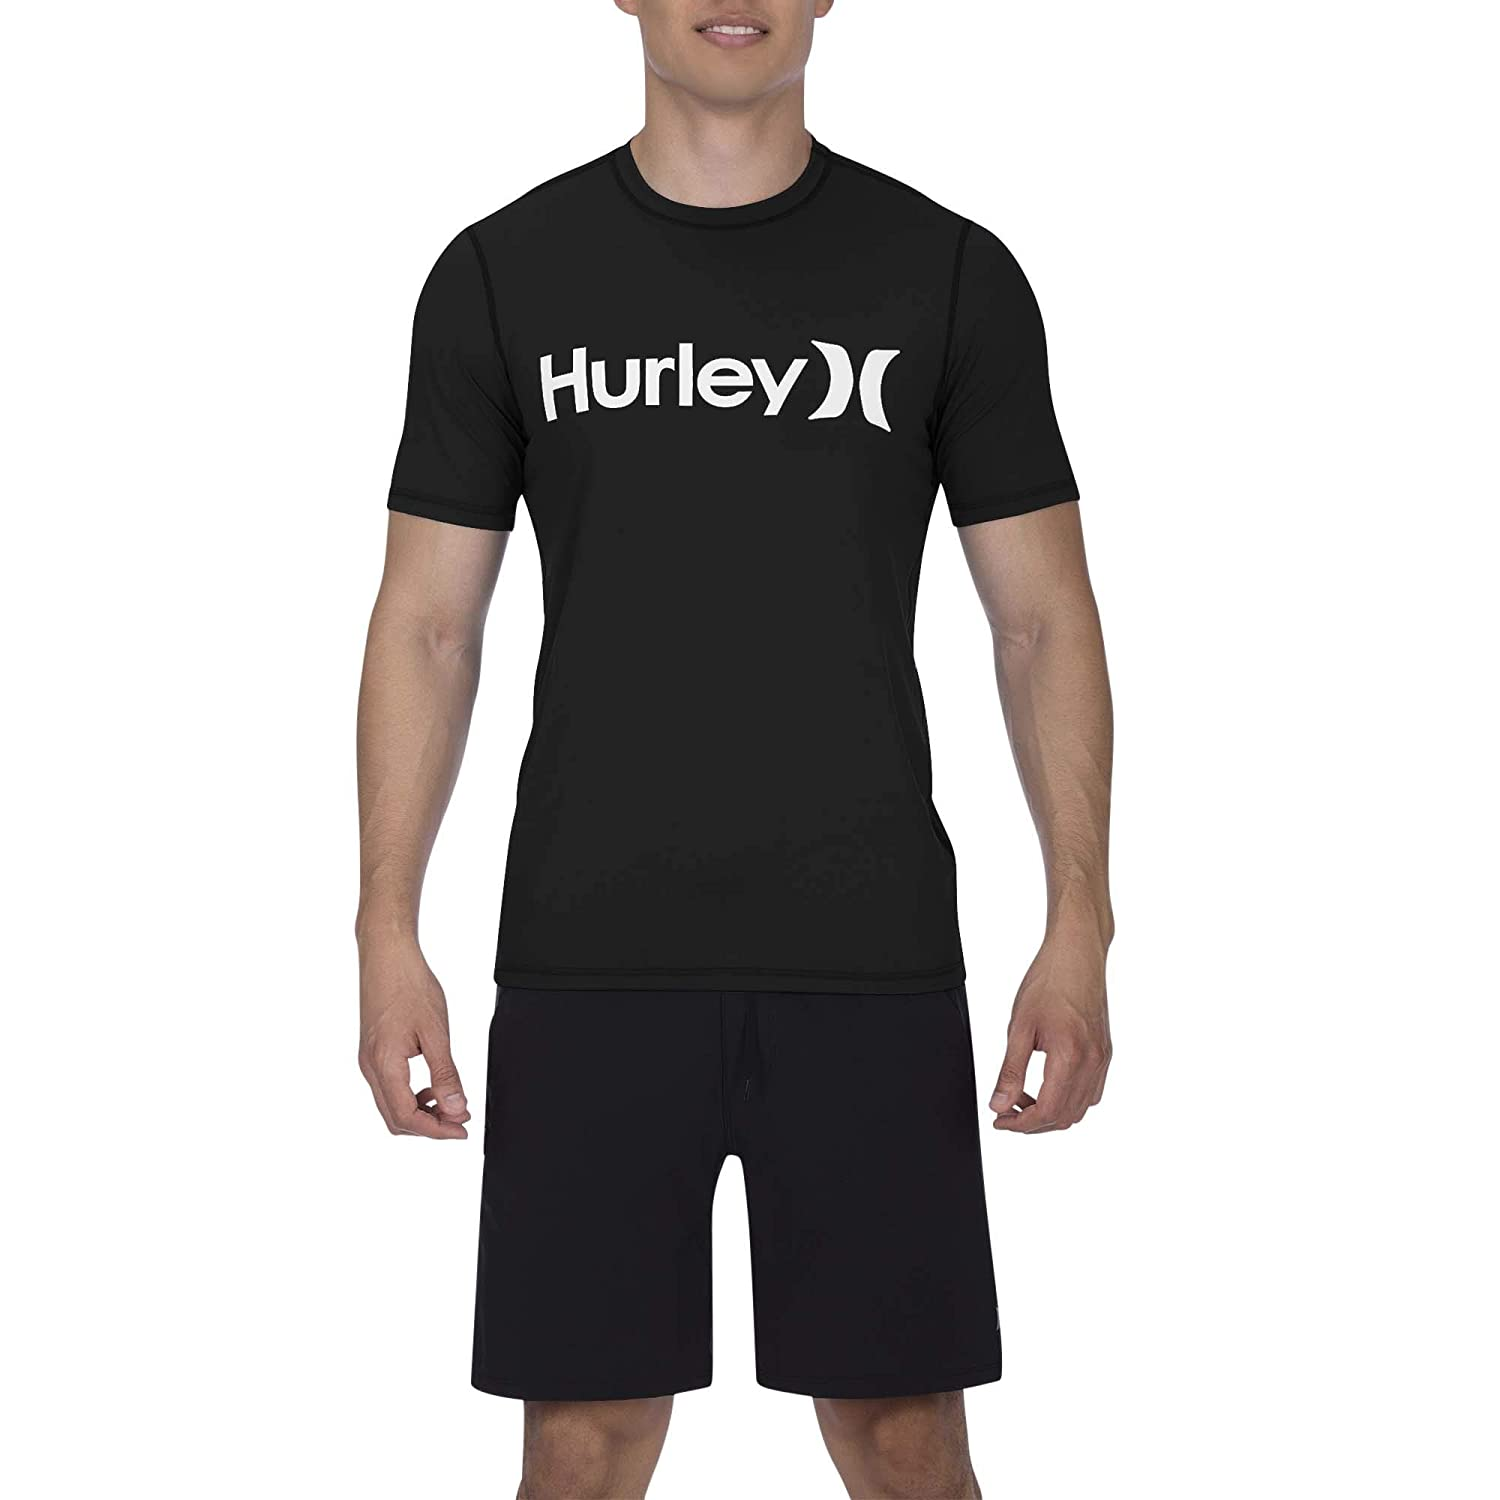 LYCRAS Unisex Adulto Hurley M One/&Only Surf Shirt S//S